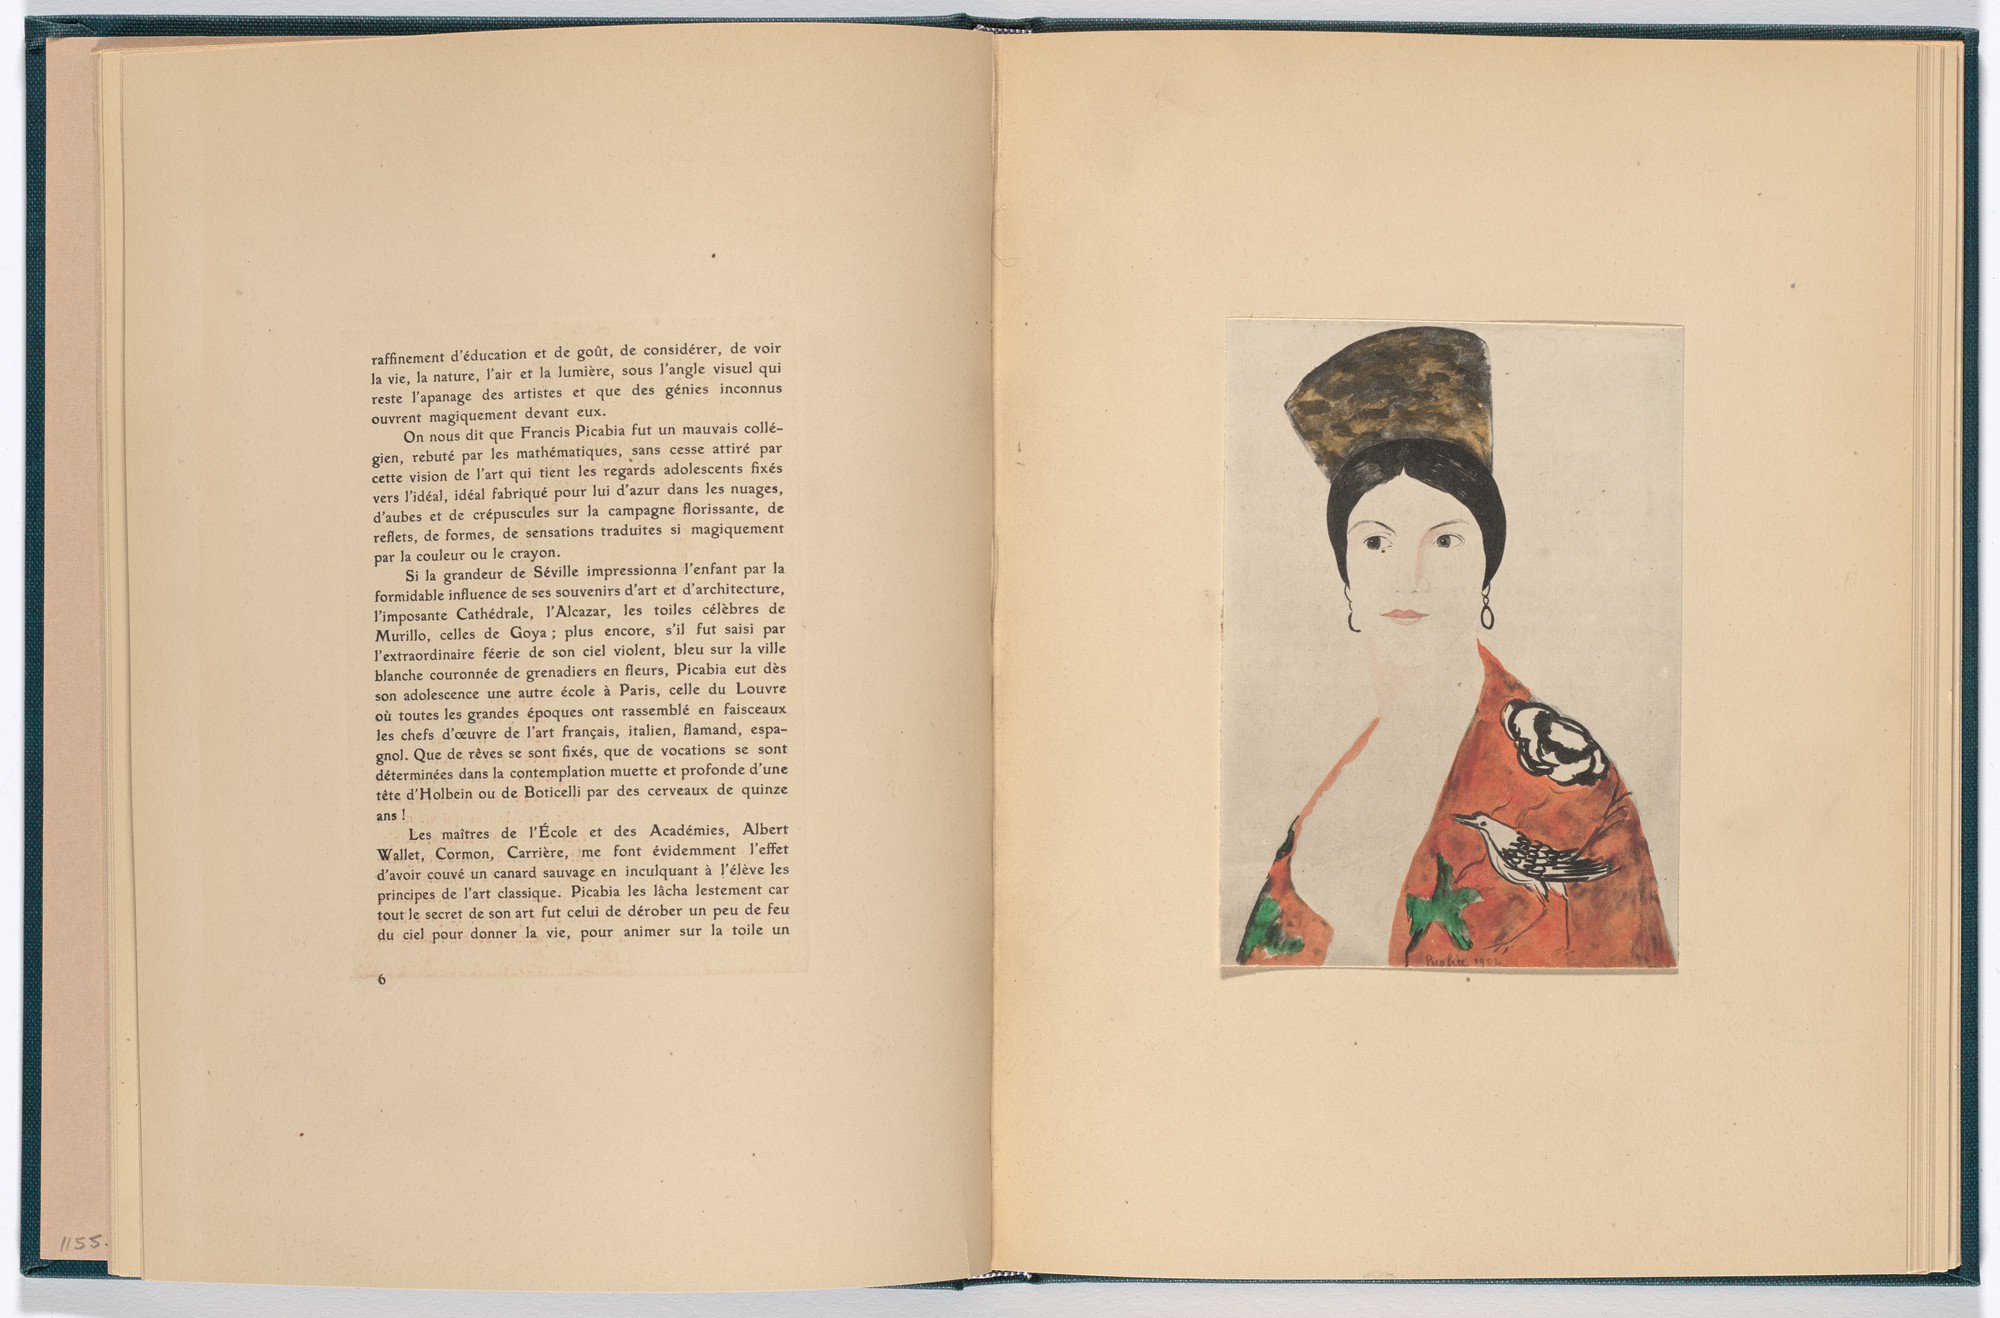 Francis Picabia. Reproduction of Espagnole (Spanish Woman) (facing page 6) from Monographie Francis Picabia (Francis Picabia Monograph). 1920